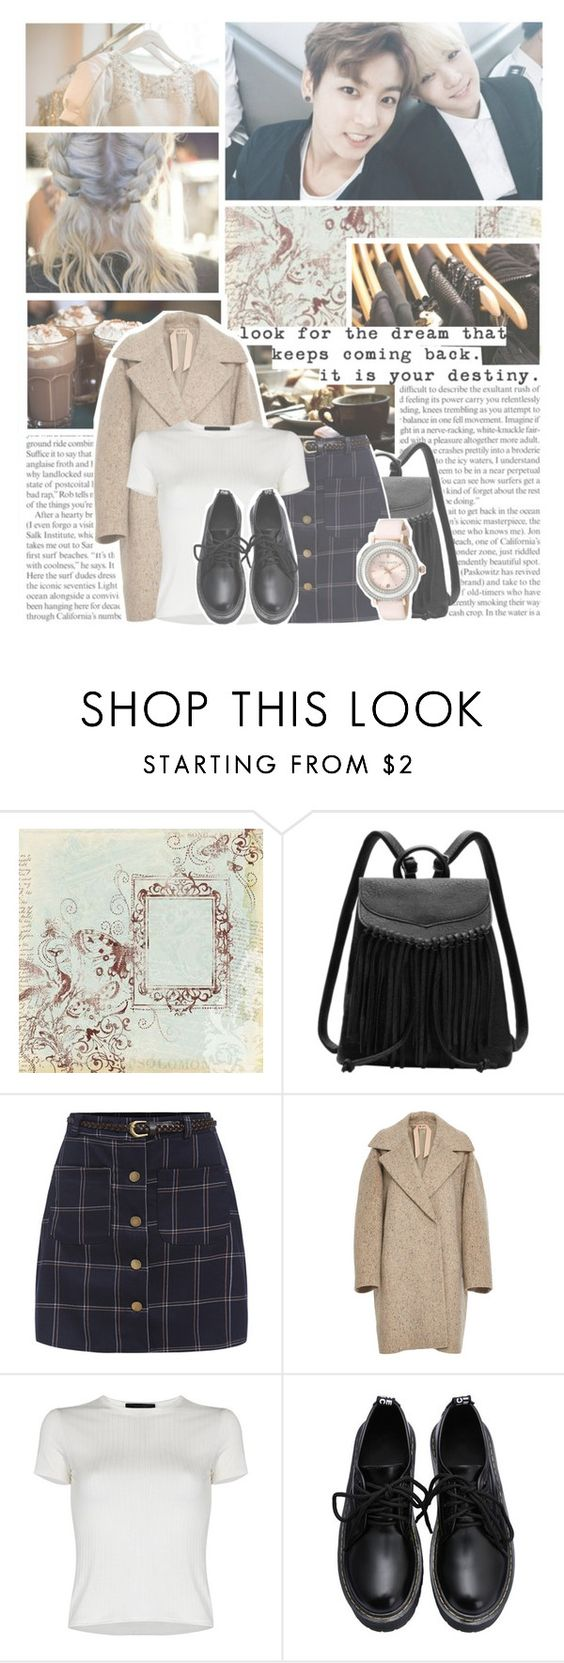 """""""sugar"""" by black-galaxy ❤ liked on Polyvore featuring N°21, Ted Baker, women's clothing, women, female, woman, misses and juniors"""